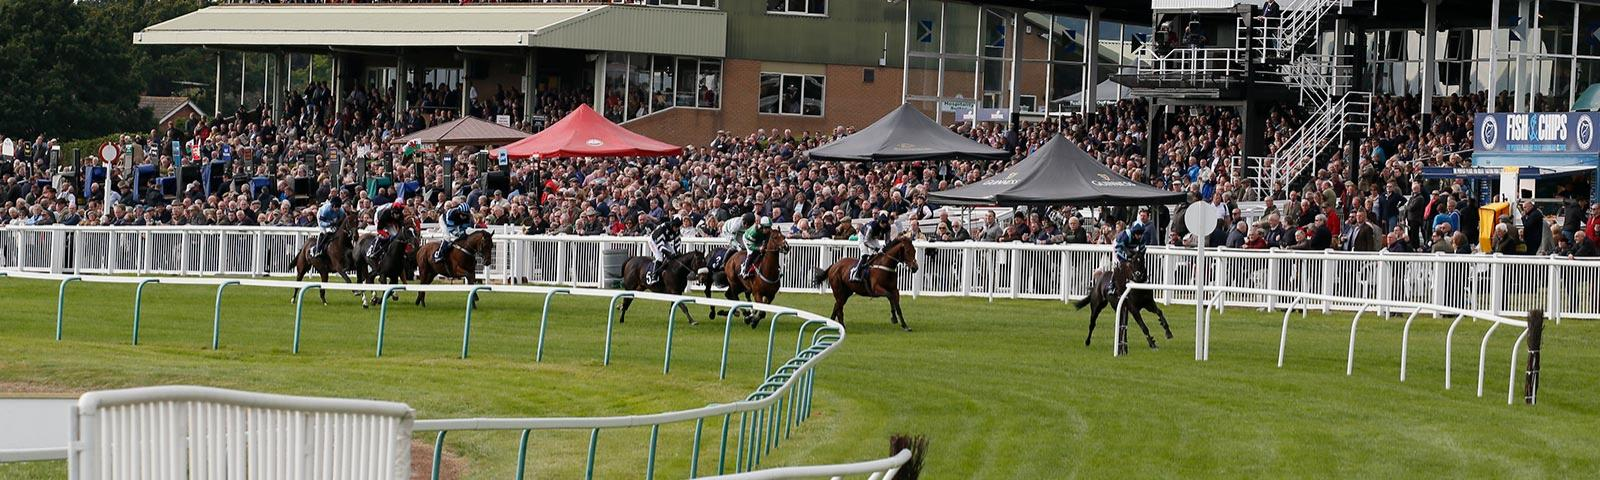 Racing turning out of home straight at Hereford Racecourse